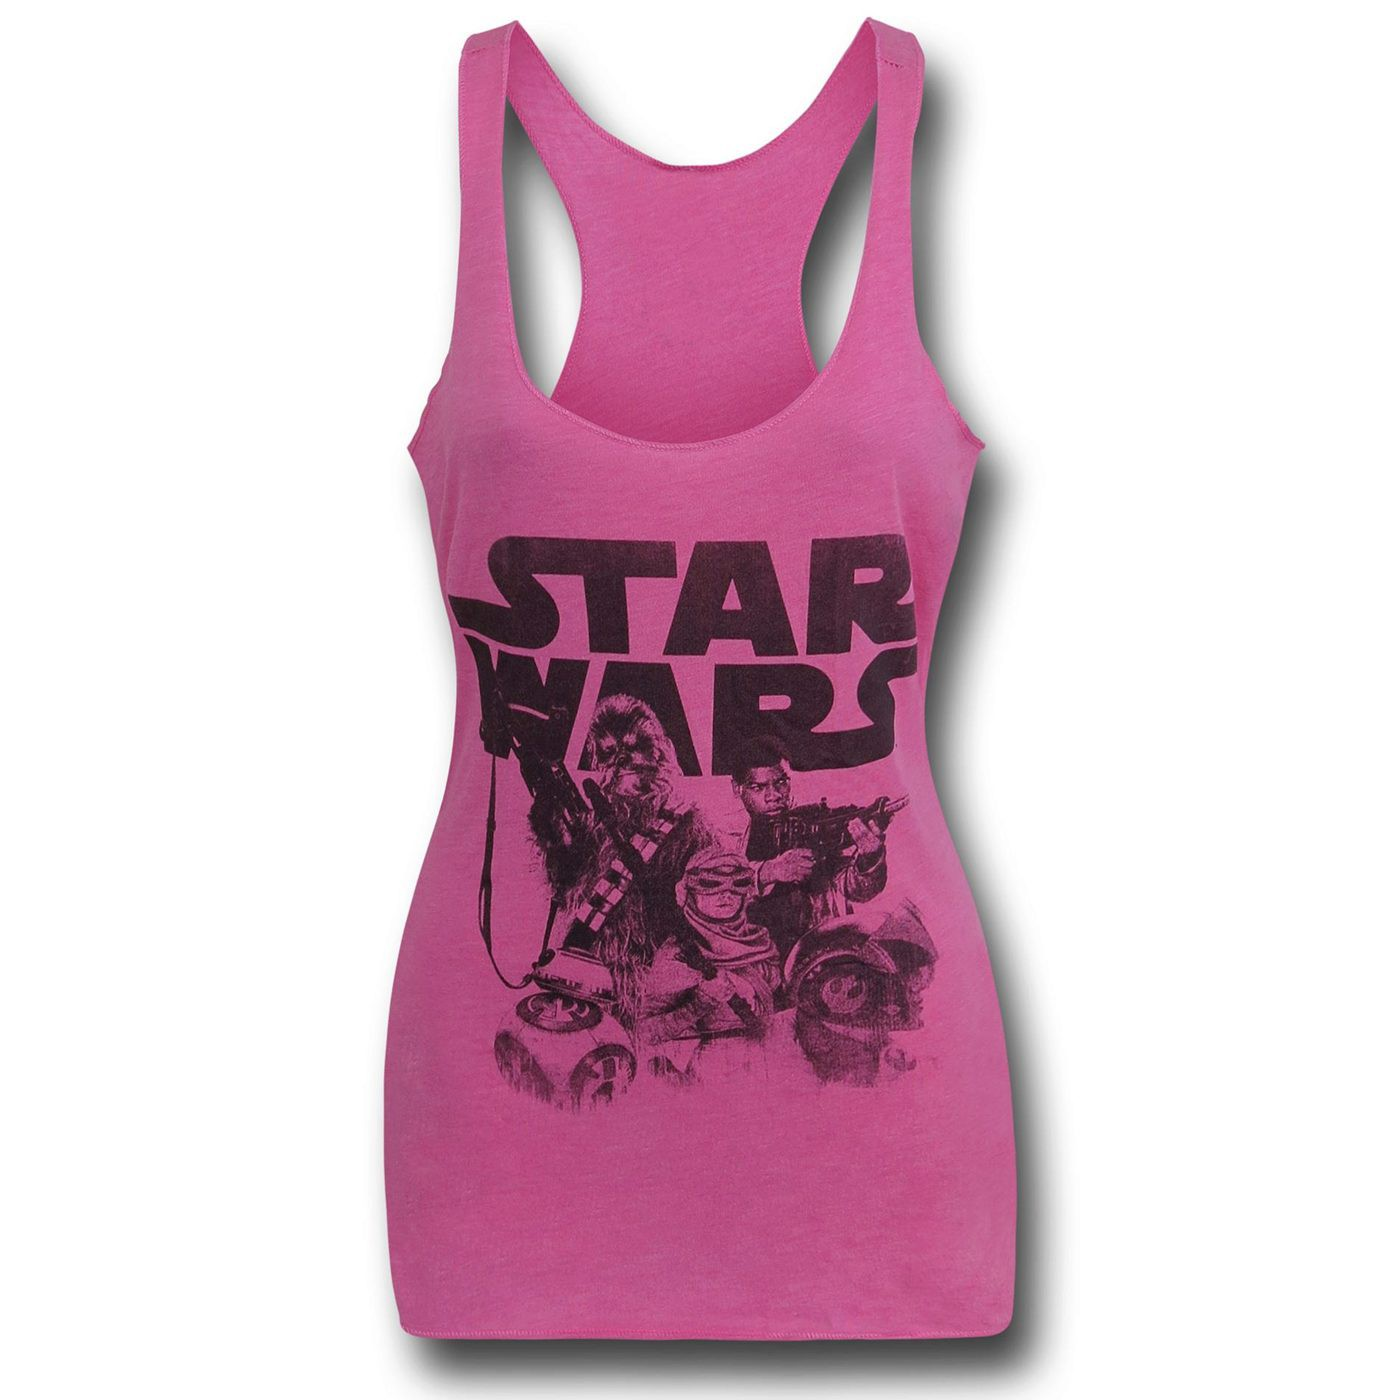 Star Wars Force Awakens Women's Pink Tank Top